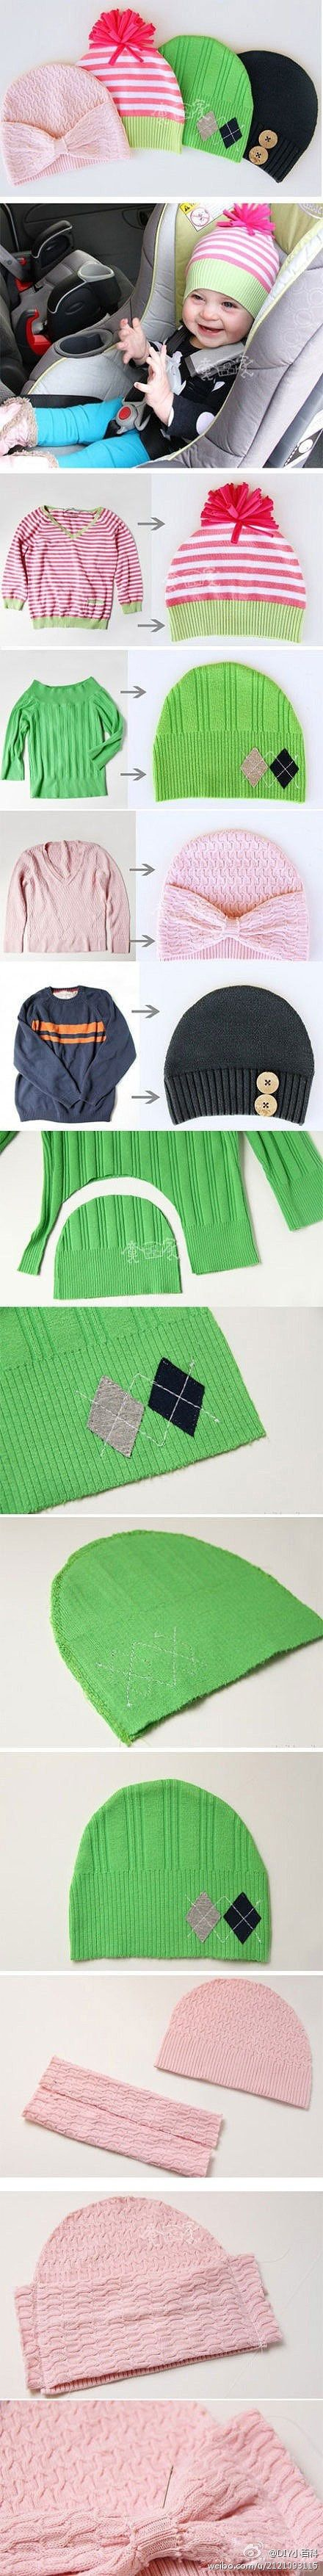 recycled sweaters=LOVE THIS IDEA!!!